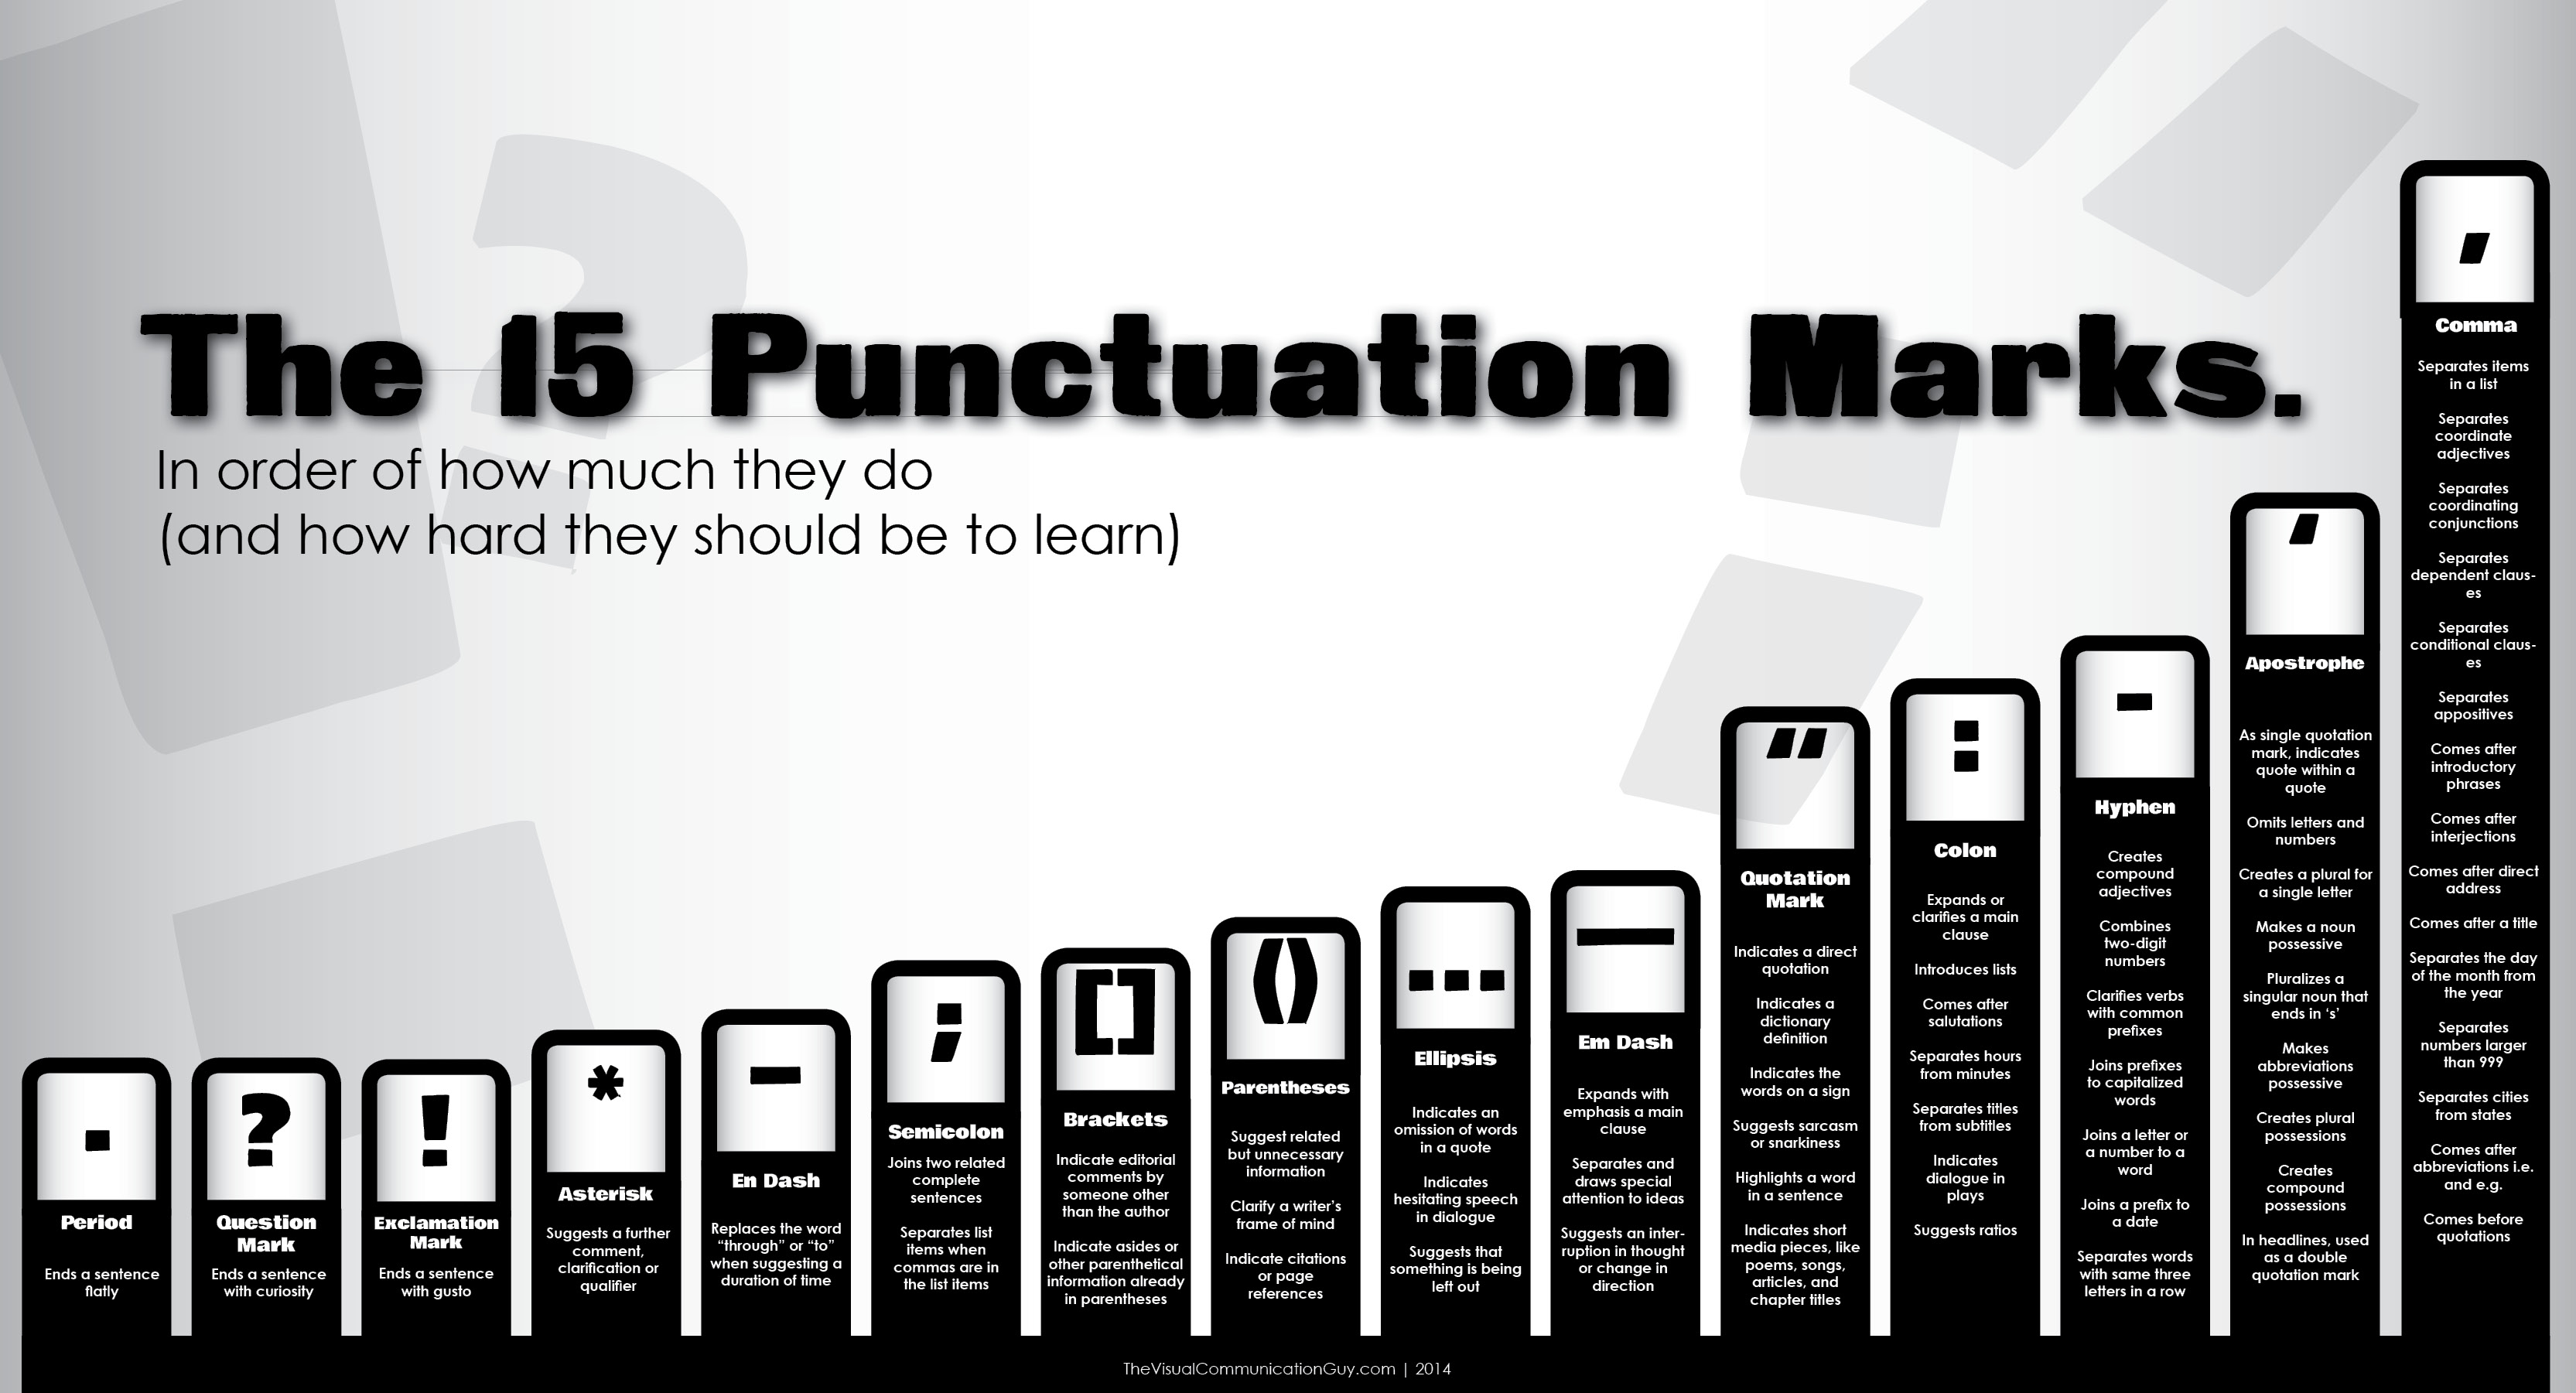 The 15 Punctuation Marks infographic